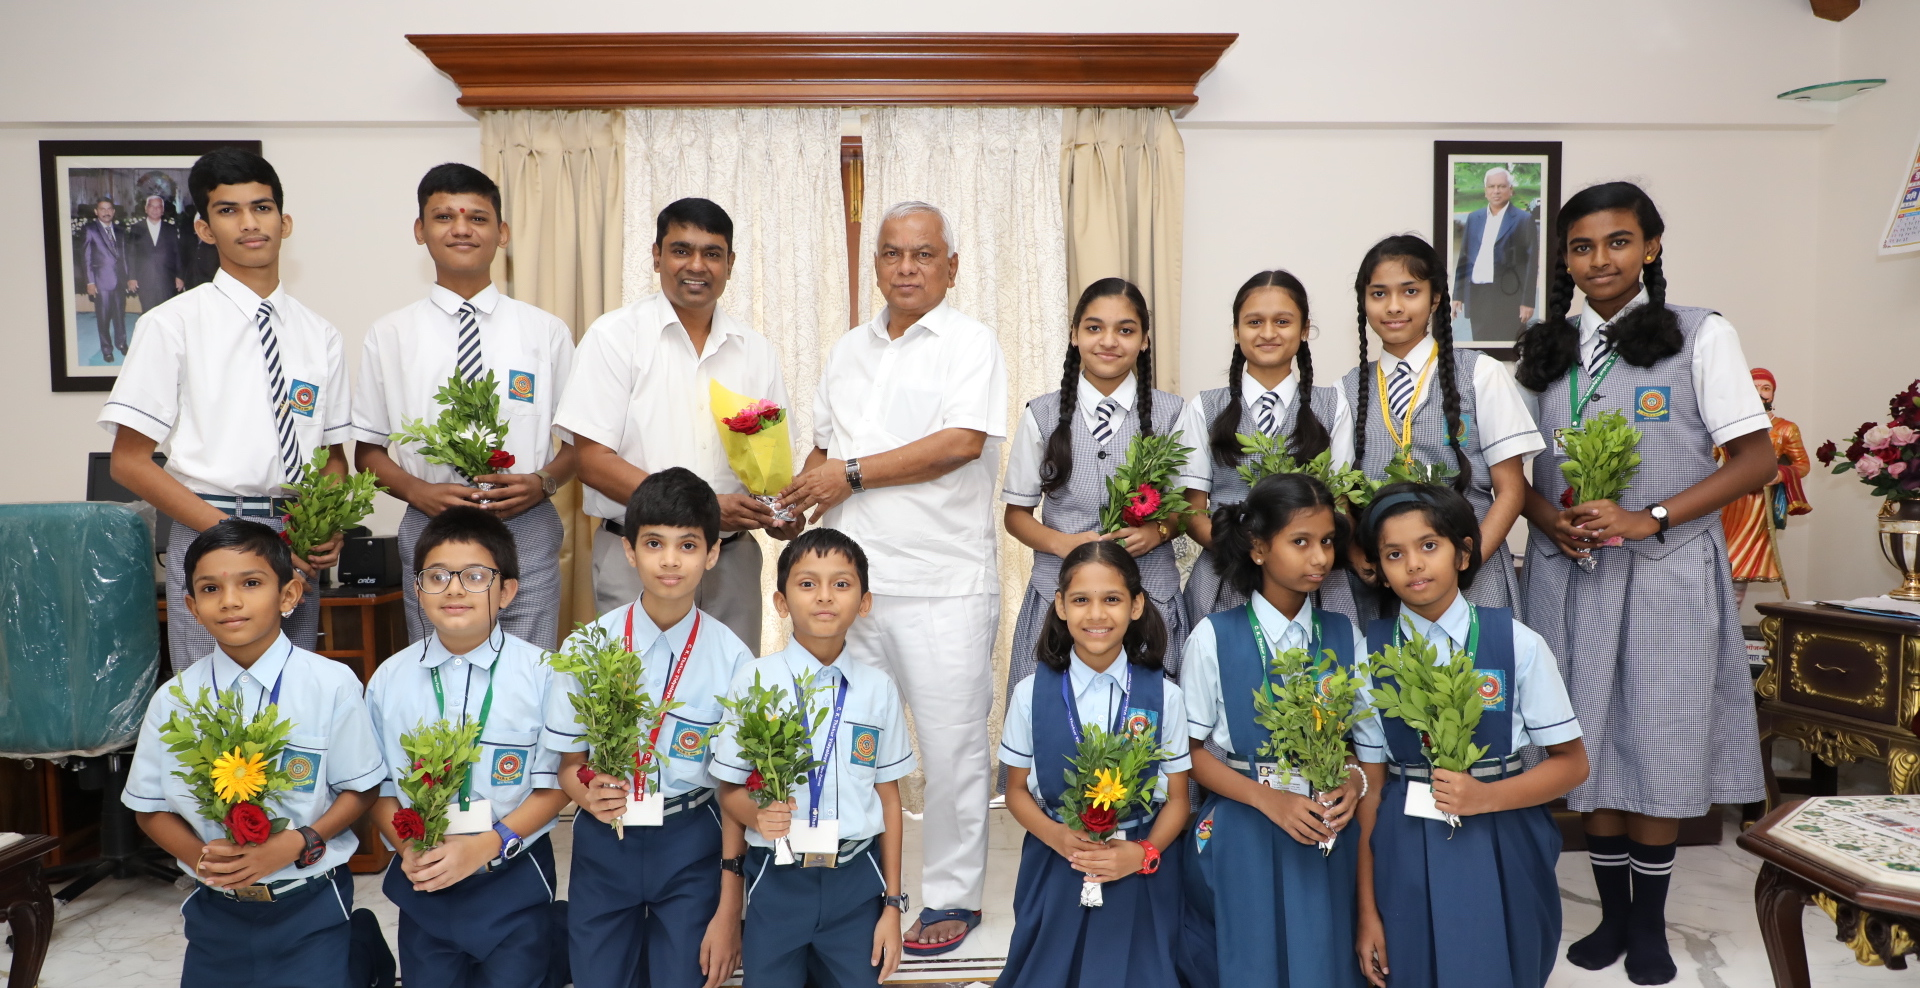 Felicitation of Scholarship Achievers